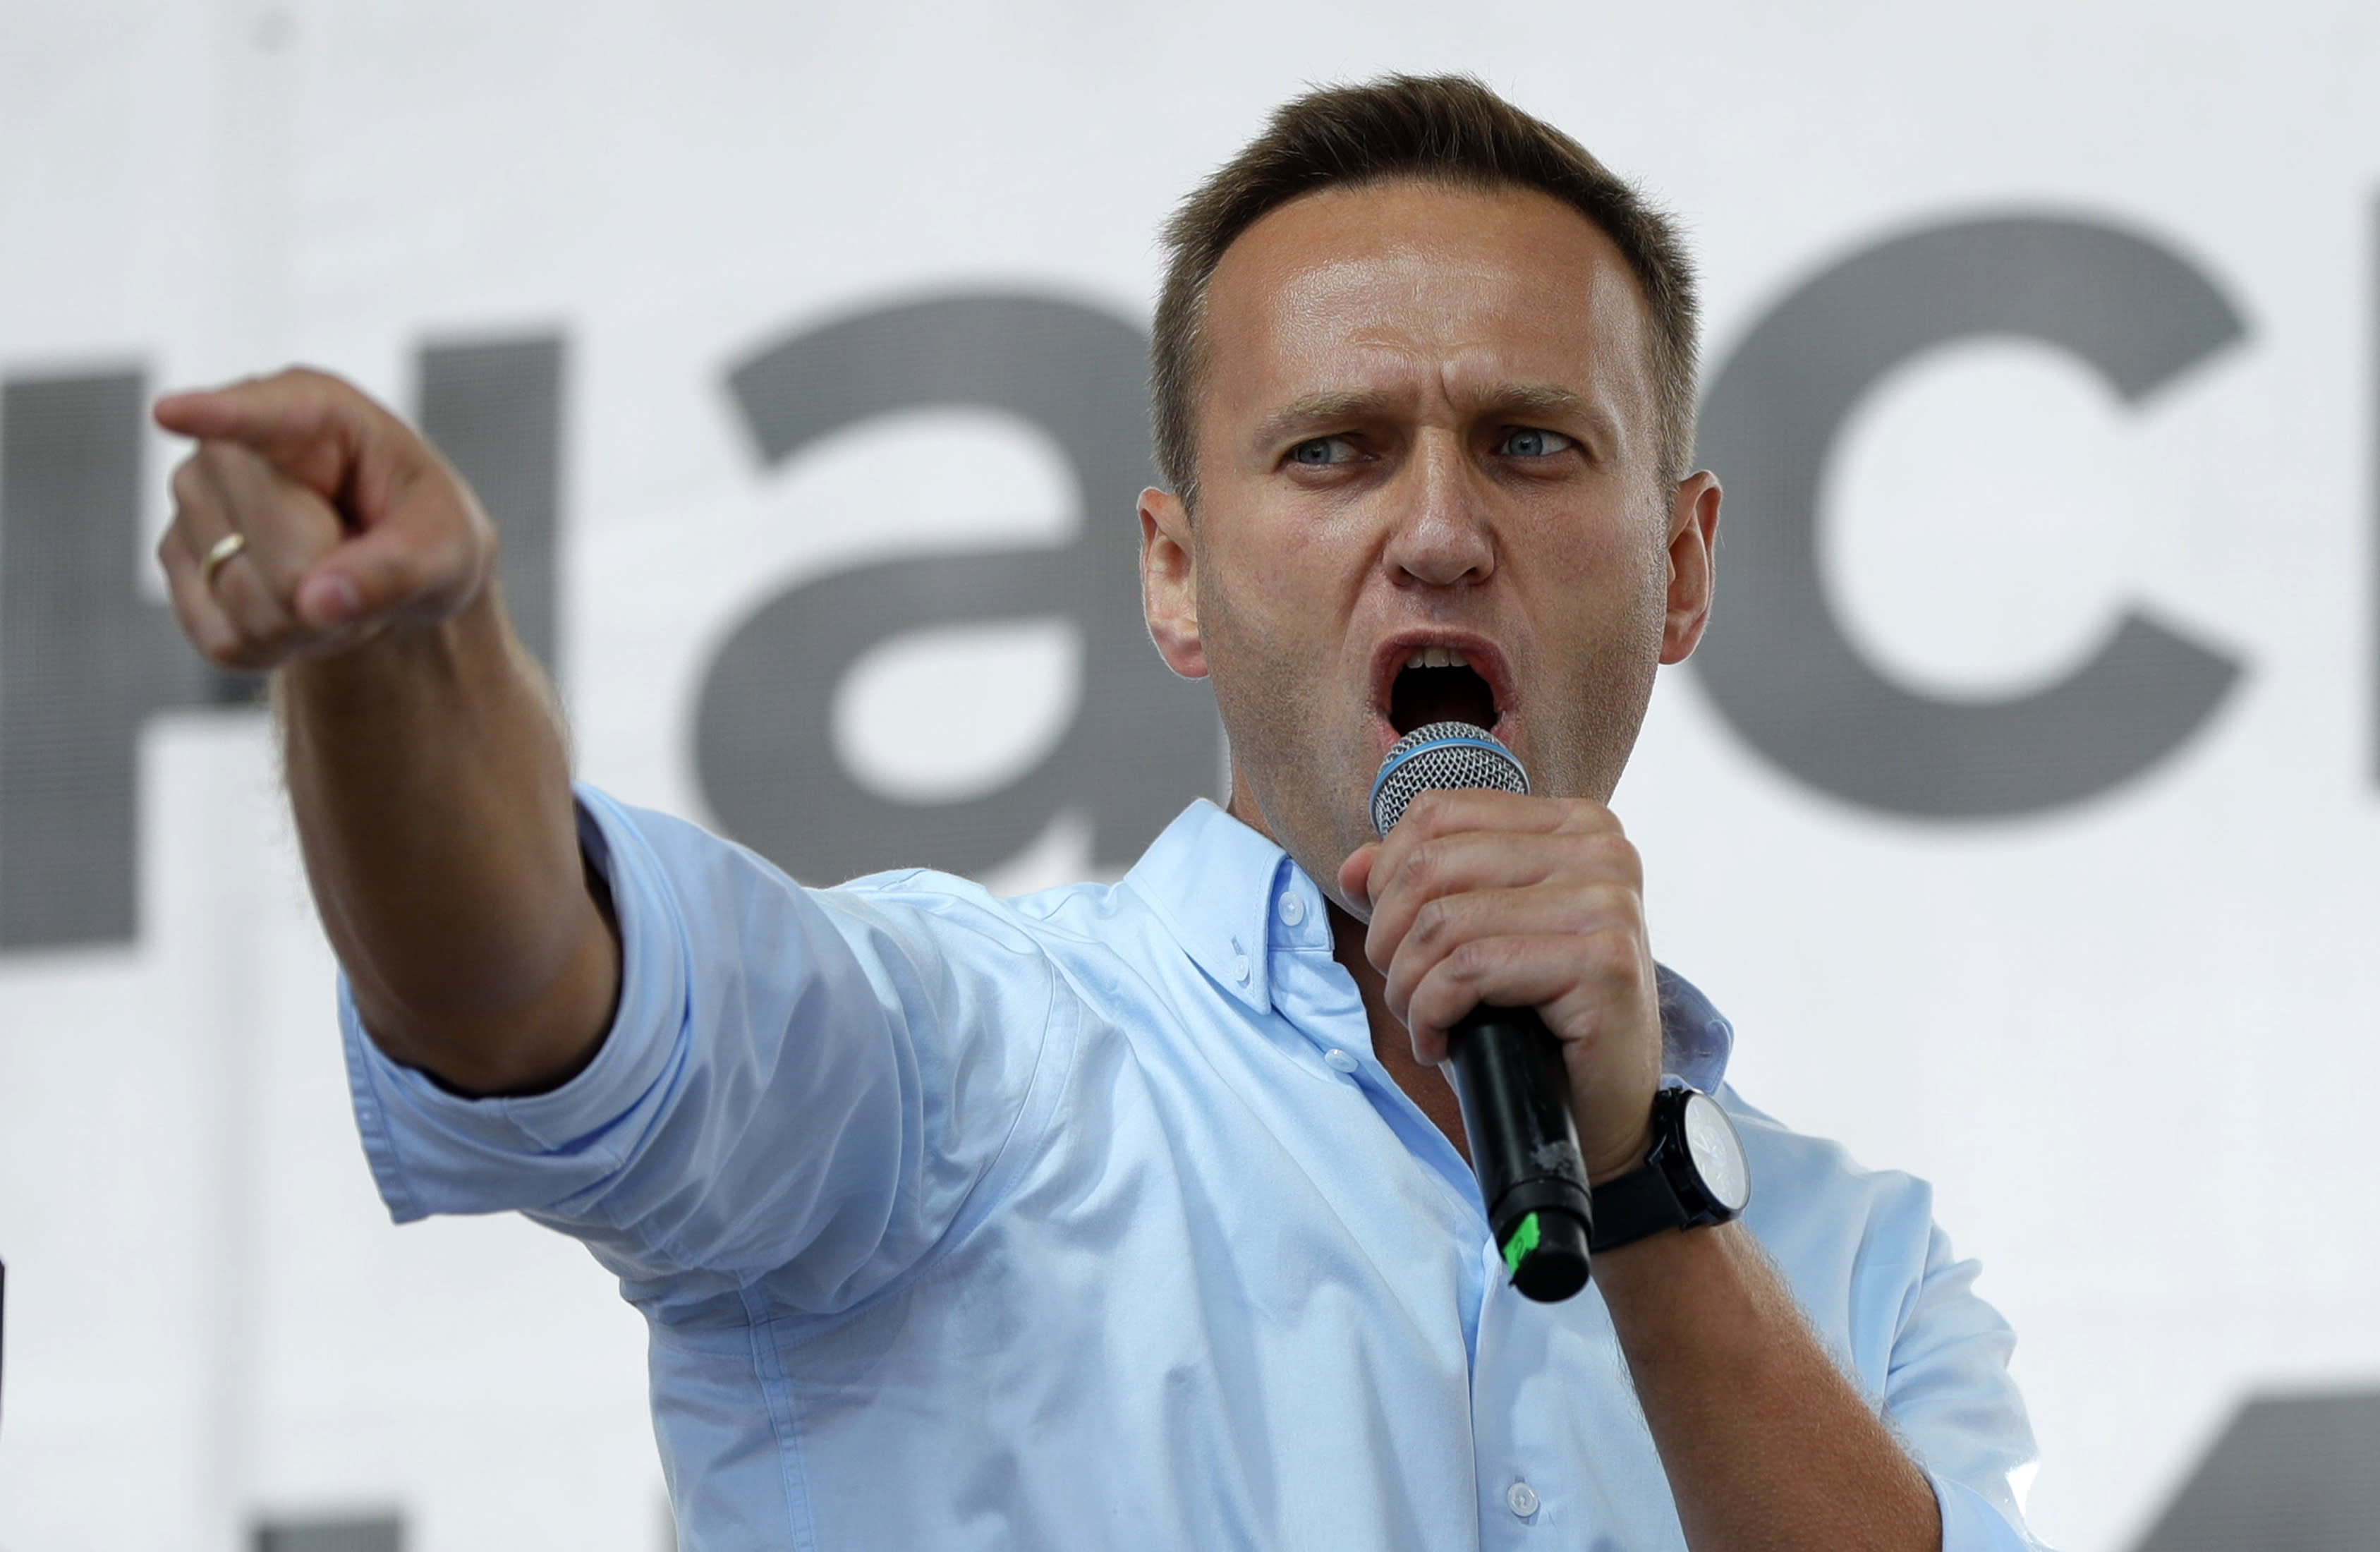 FILE - In this July 20, 2019, file photo, Russian opposition activist Alexei Navalny gestures while speaking to a crowd during a political protest in Moscow, Russia. The German hospital treating Russian opposition leader Alexei Navalny says he has been taken out of an induced coma and is responsive. German experts say Navalny, who fell ill Aug. 20 on a domestic flight in Russia, was poisoned with a substance belonging to the Soviet-era nerve agent Novichok. (AP Photo/Pavel Golovkin, File)